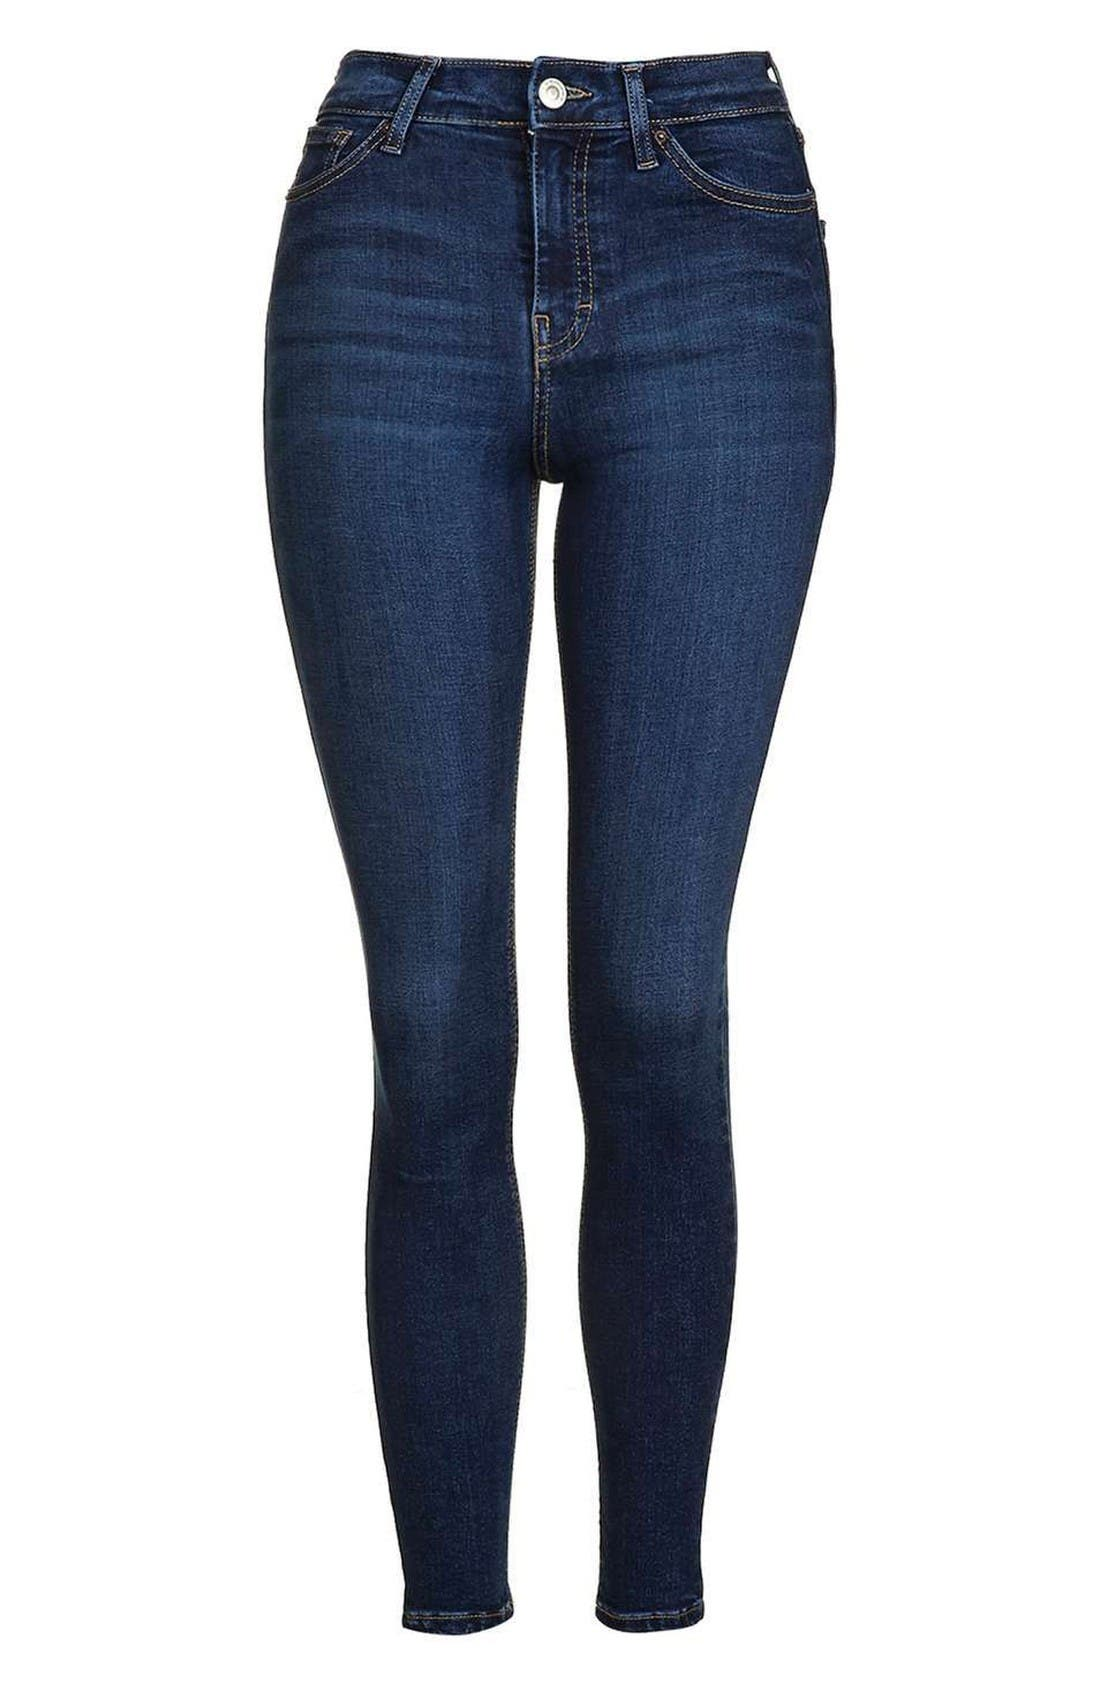 Jamie High Waist Ankle Skinny Jeans,                             Alternate thumbnail 4, color,                             Indigo